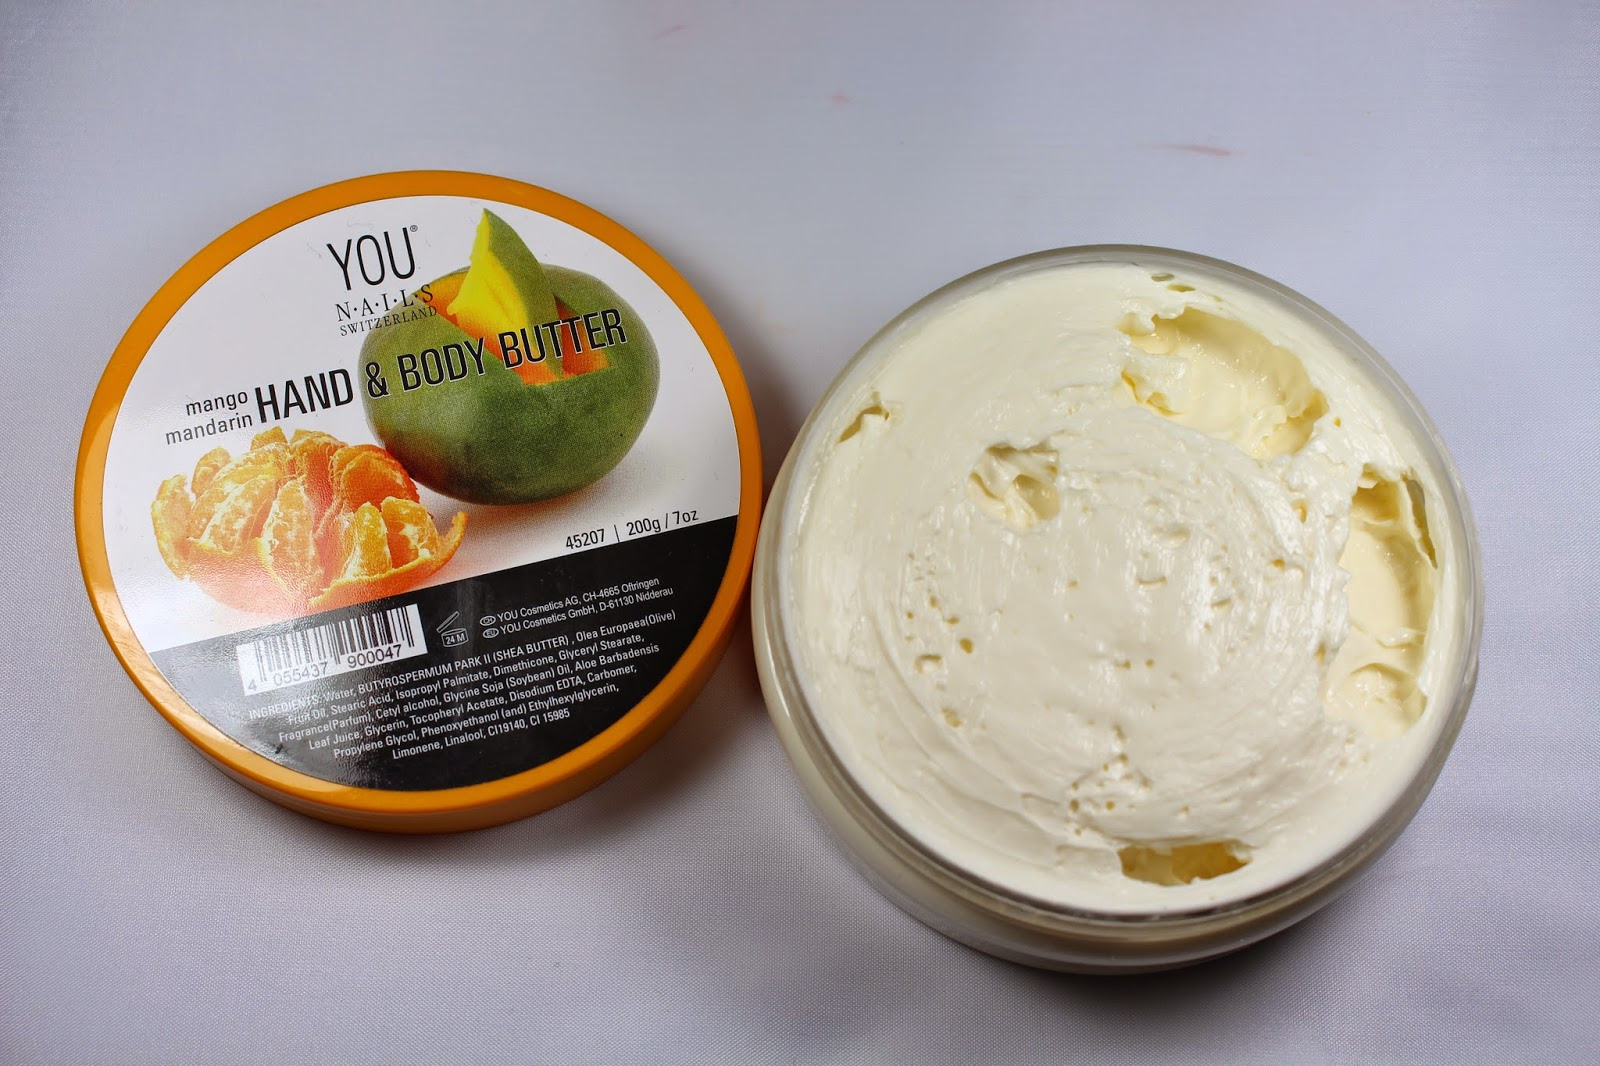 YOU Nails Switzerland Body Butter